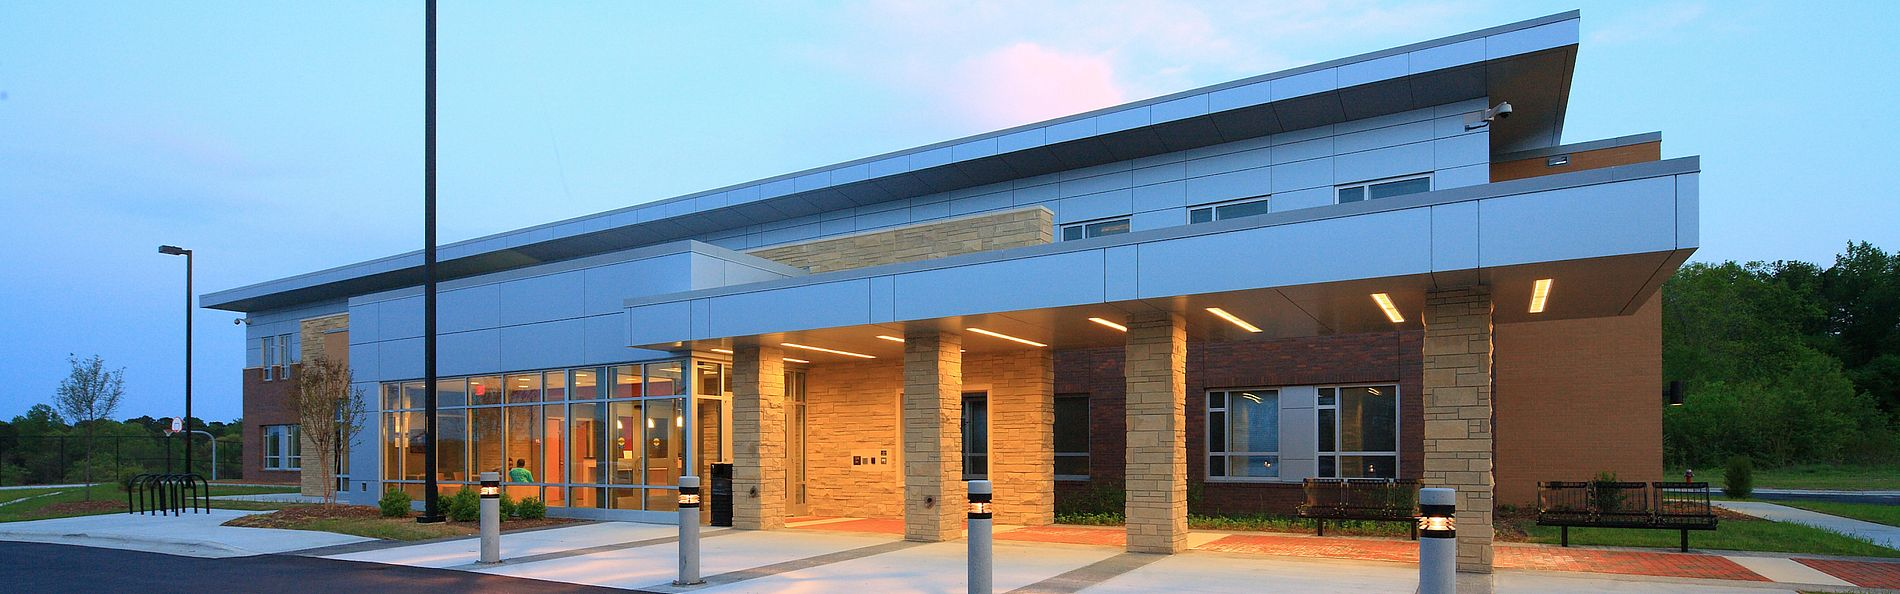 Crisis assessment unit and substance abuse treatment facility in wakebrook